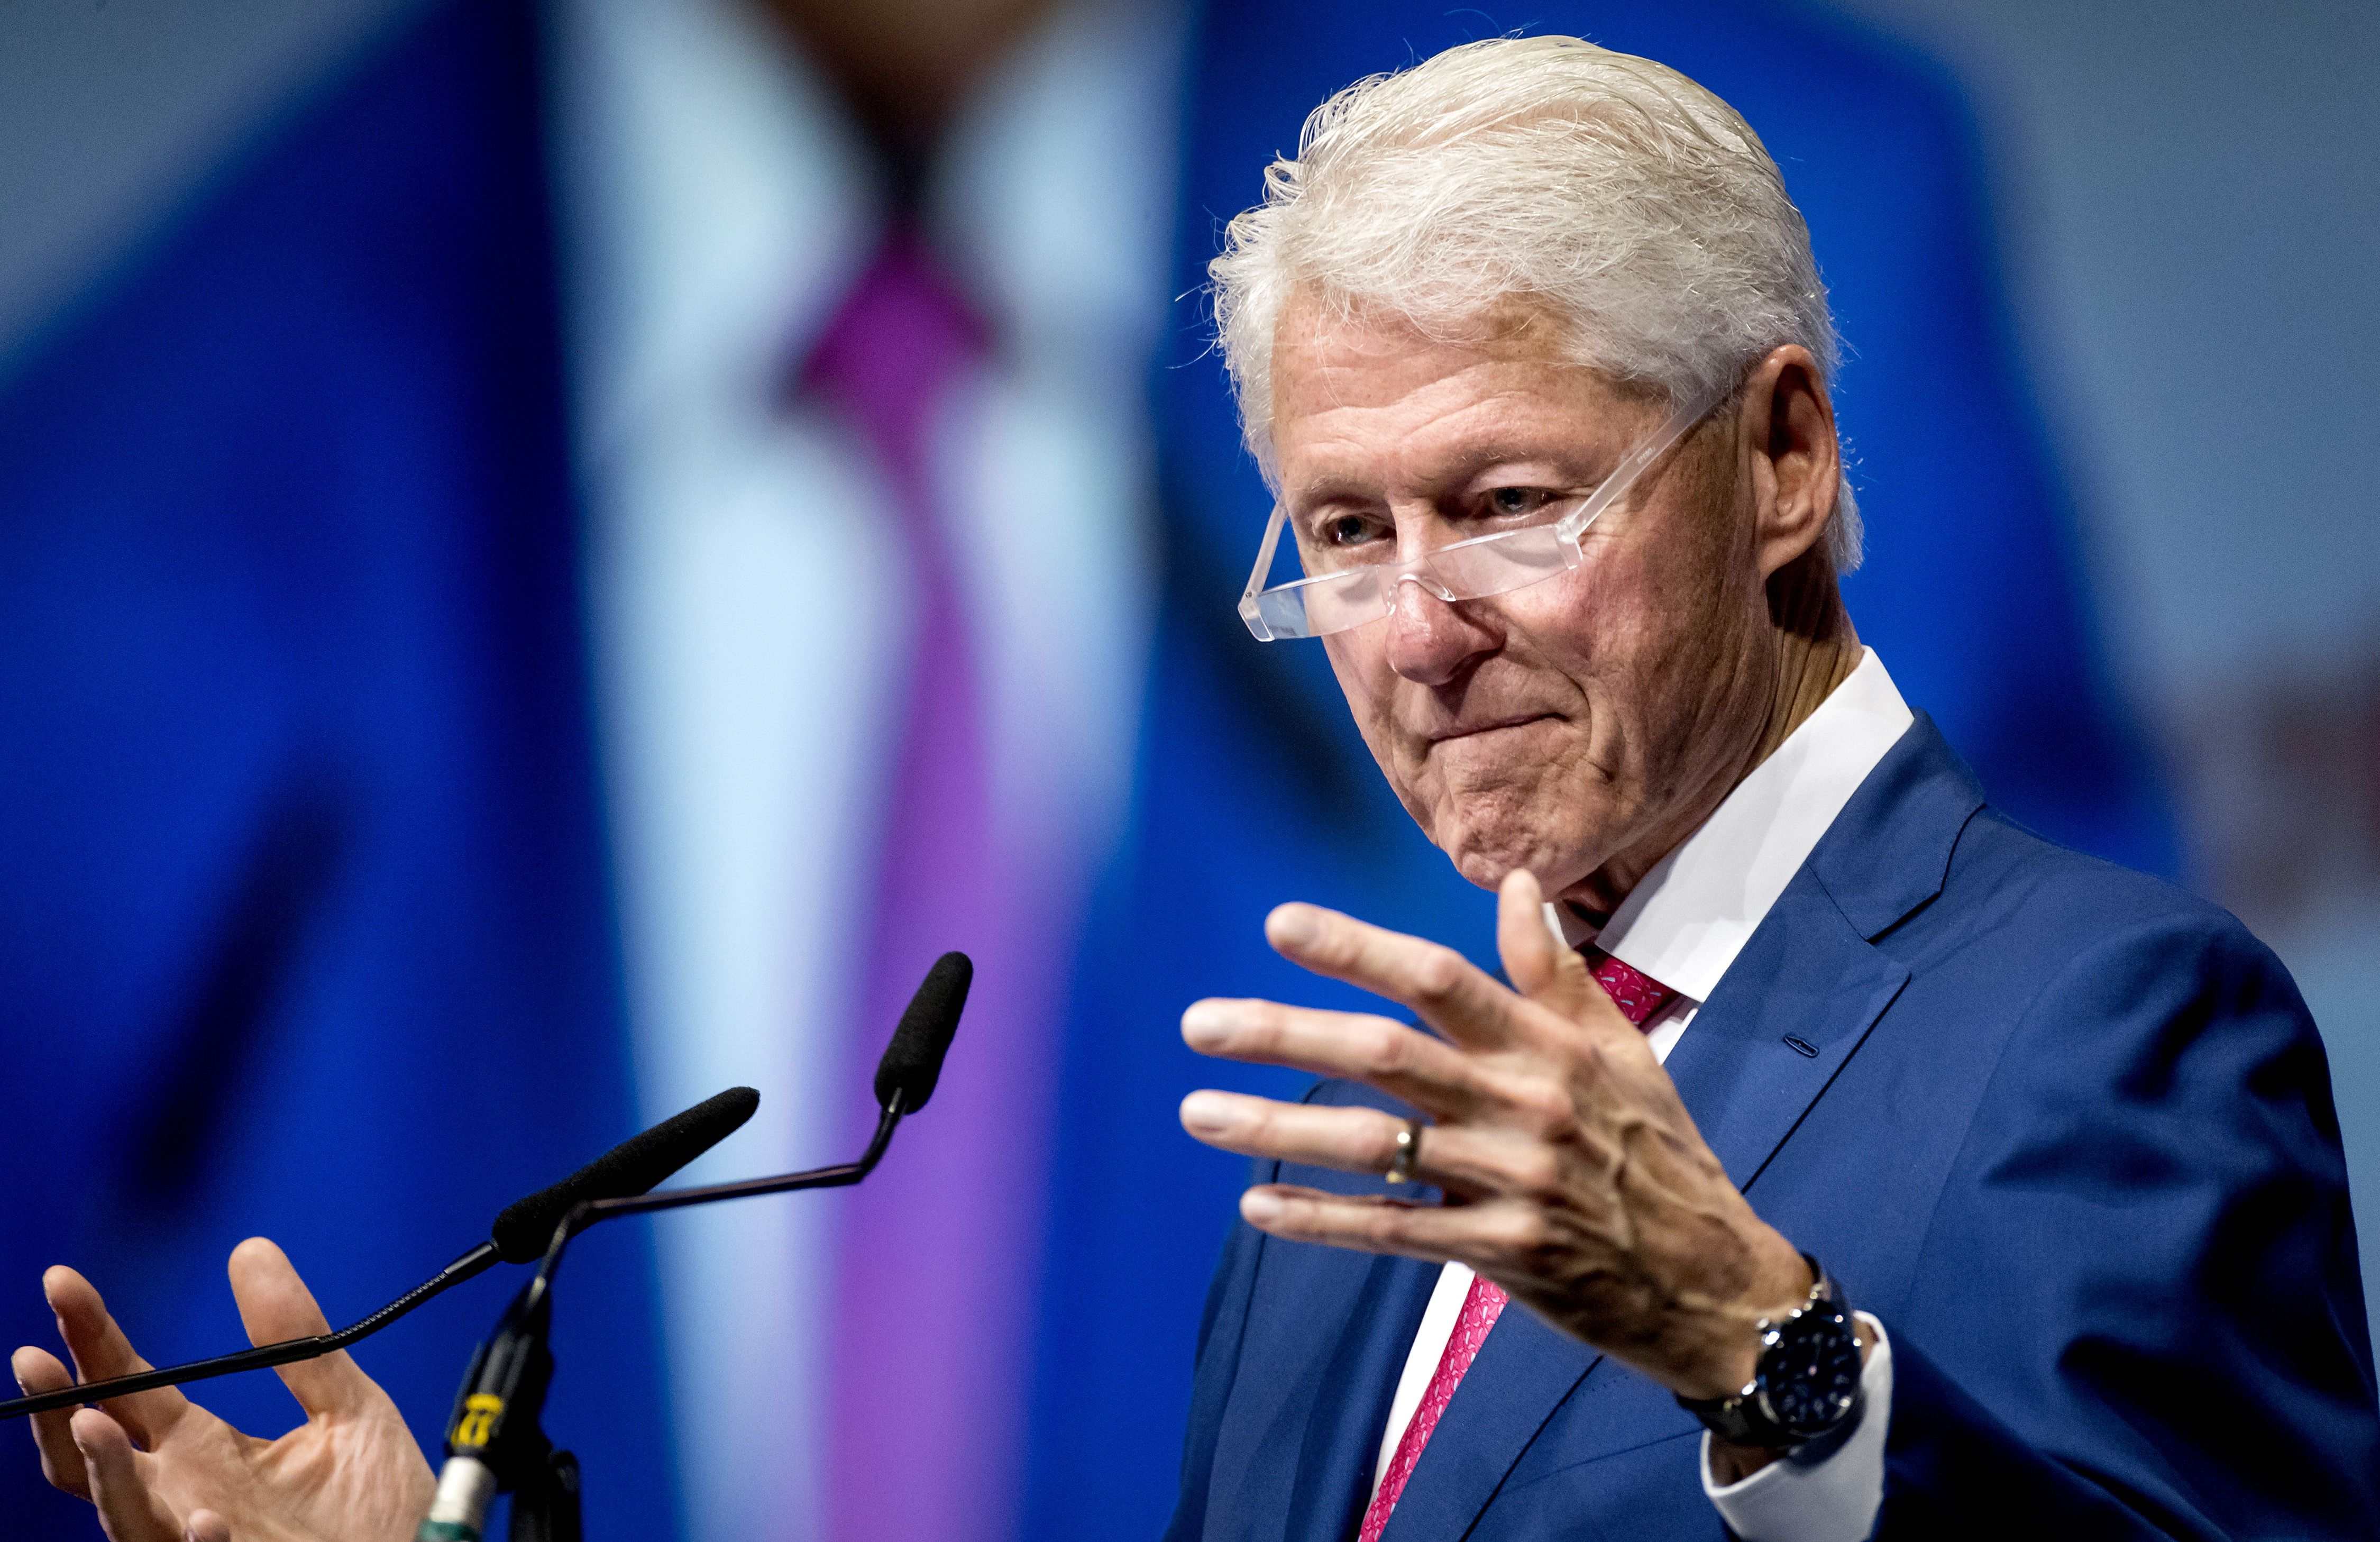 Former US President Bill Clinton speaks on the last day of the international aids conference AIDS2018 in Amsterdam on July 27, 2018. - Thousands of experts, scientists, politicians, policy makers and activists gathered for the conference on hiv and aids.